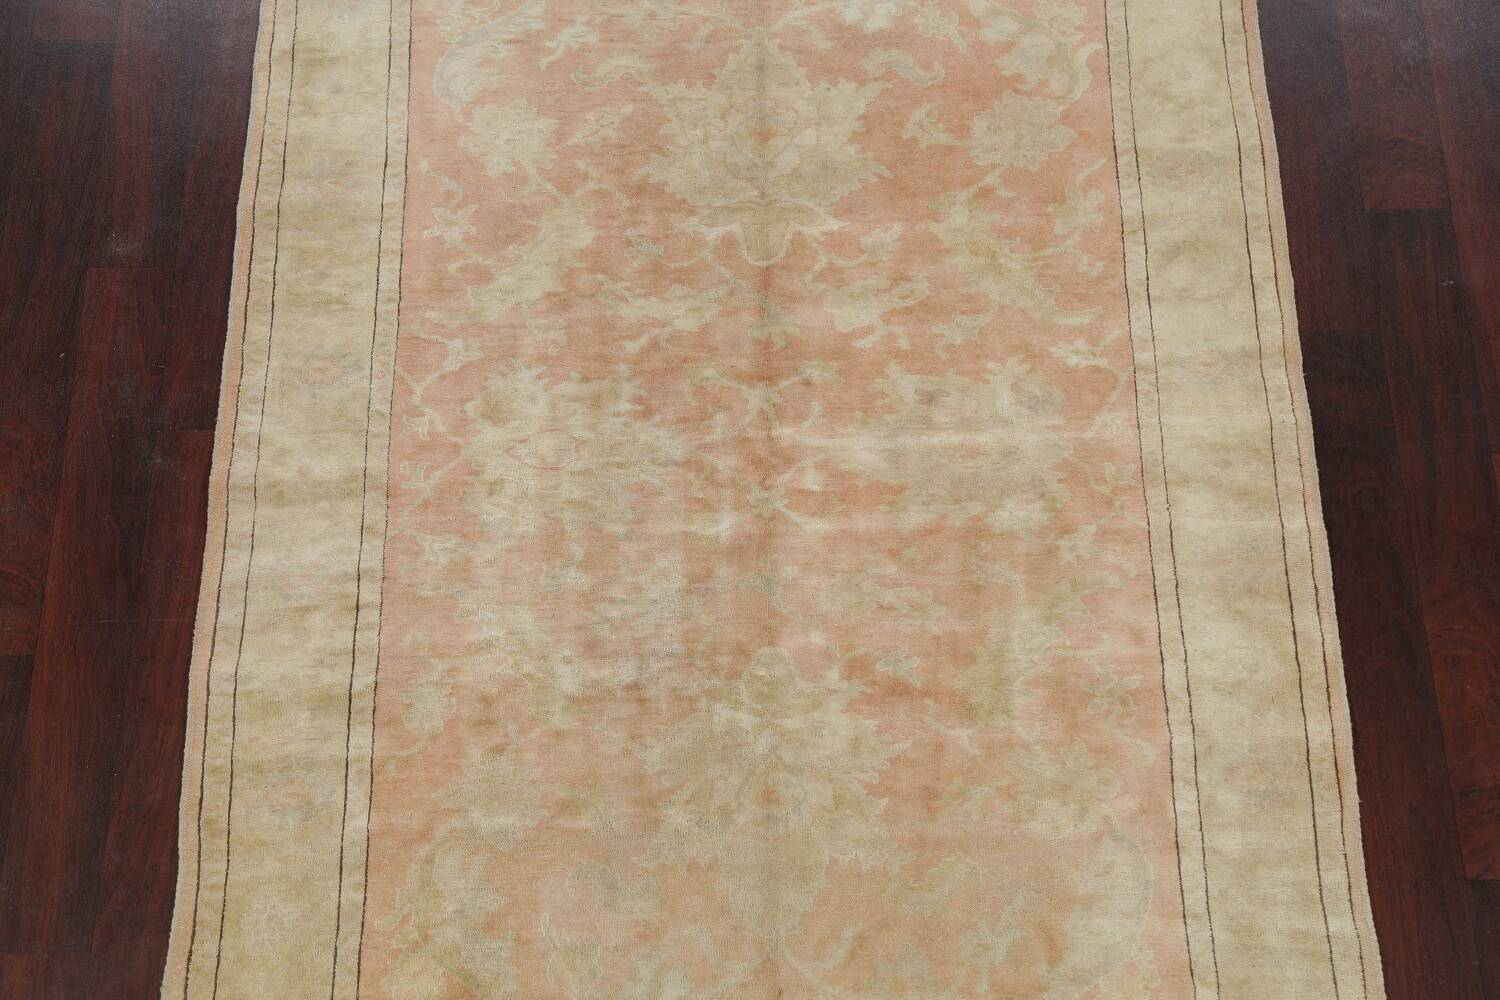 Vegetable Dye Antique Coral Peach Egyptian Area Rug 5x7 image 3